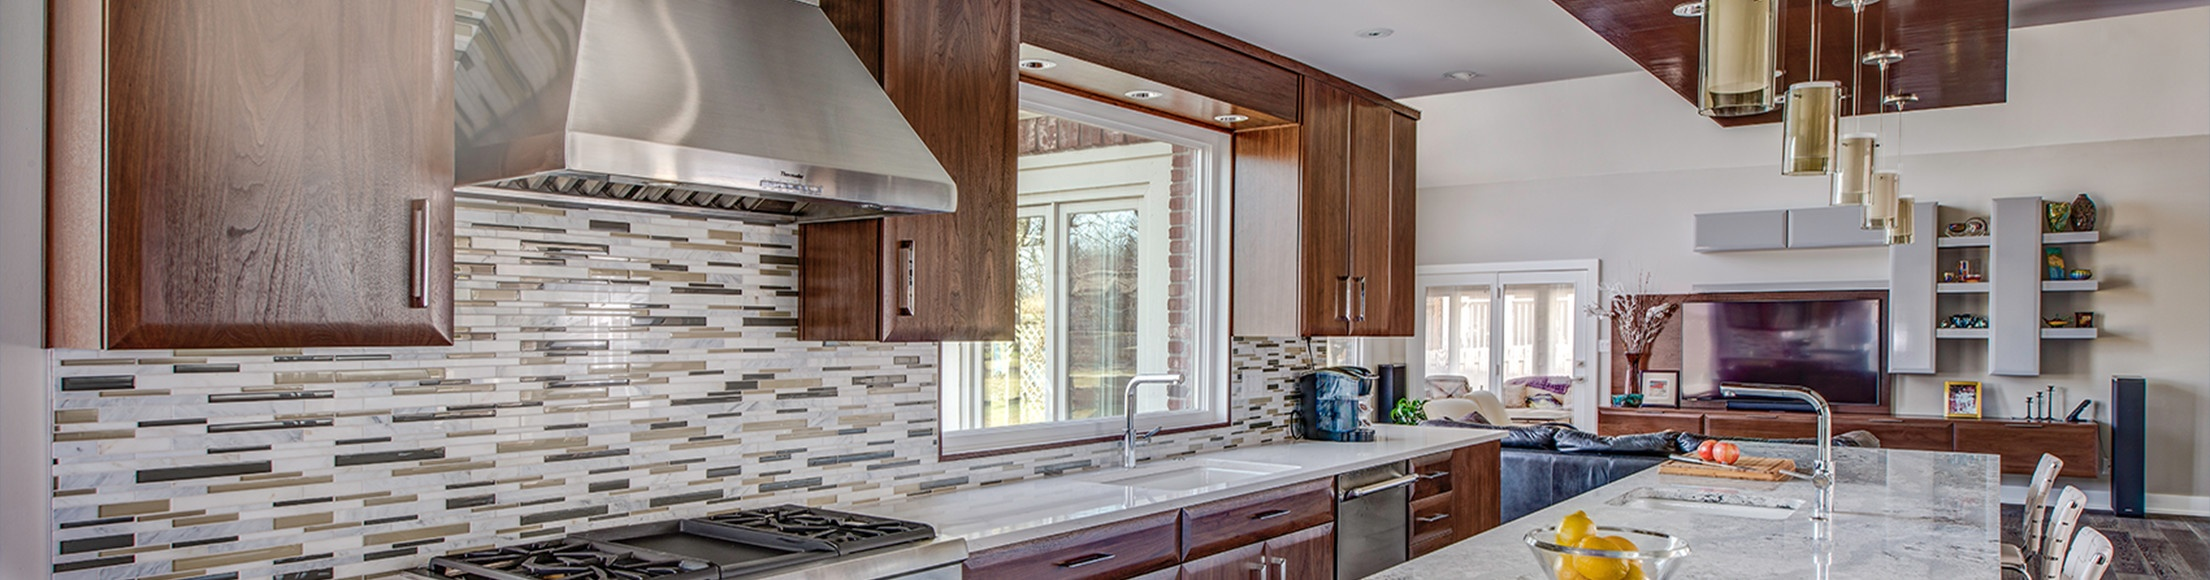 Get A Handle On Kitchen Cabinet Hardware Ccg Remodeling